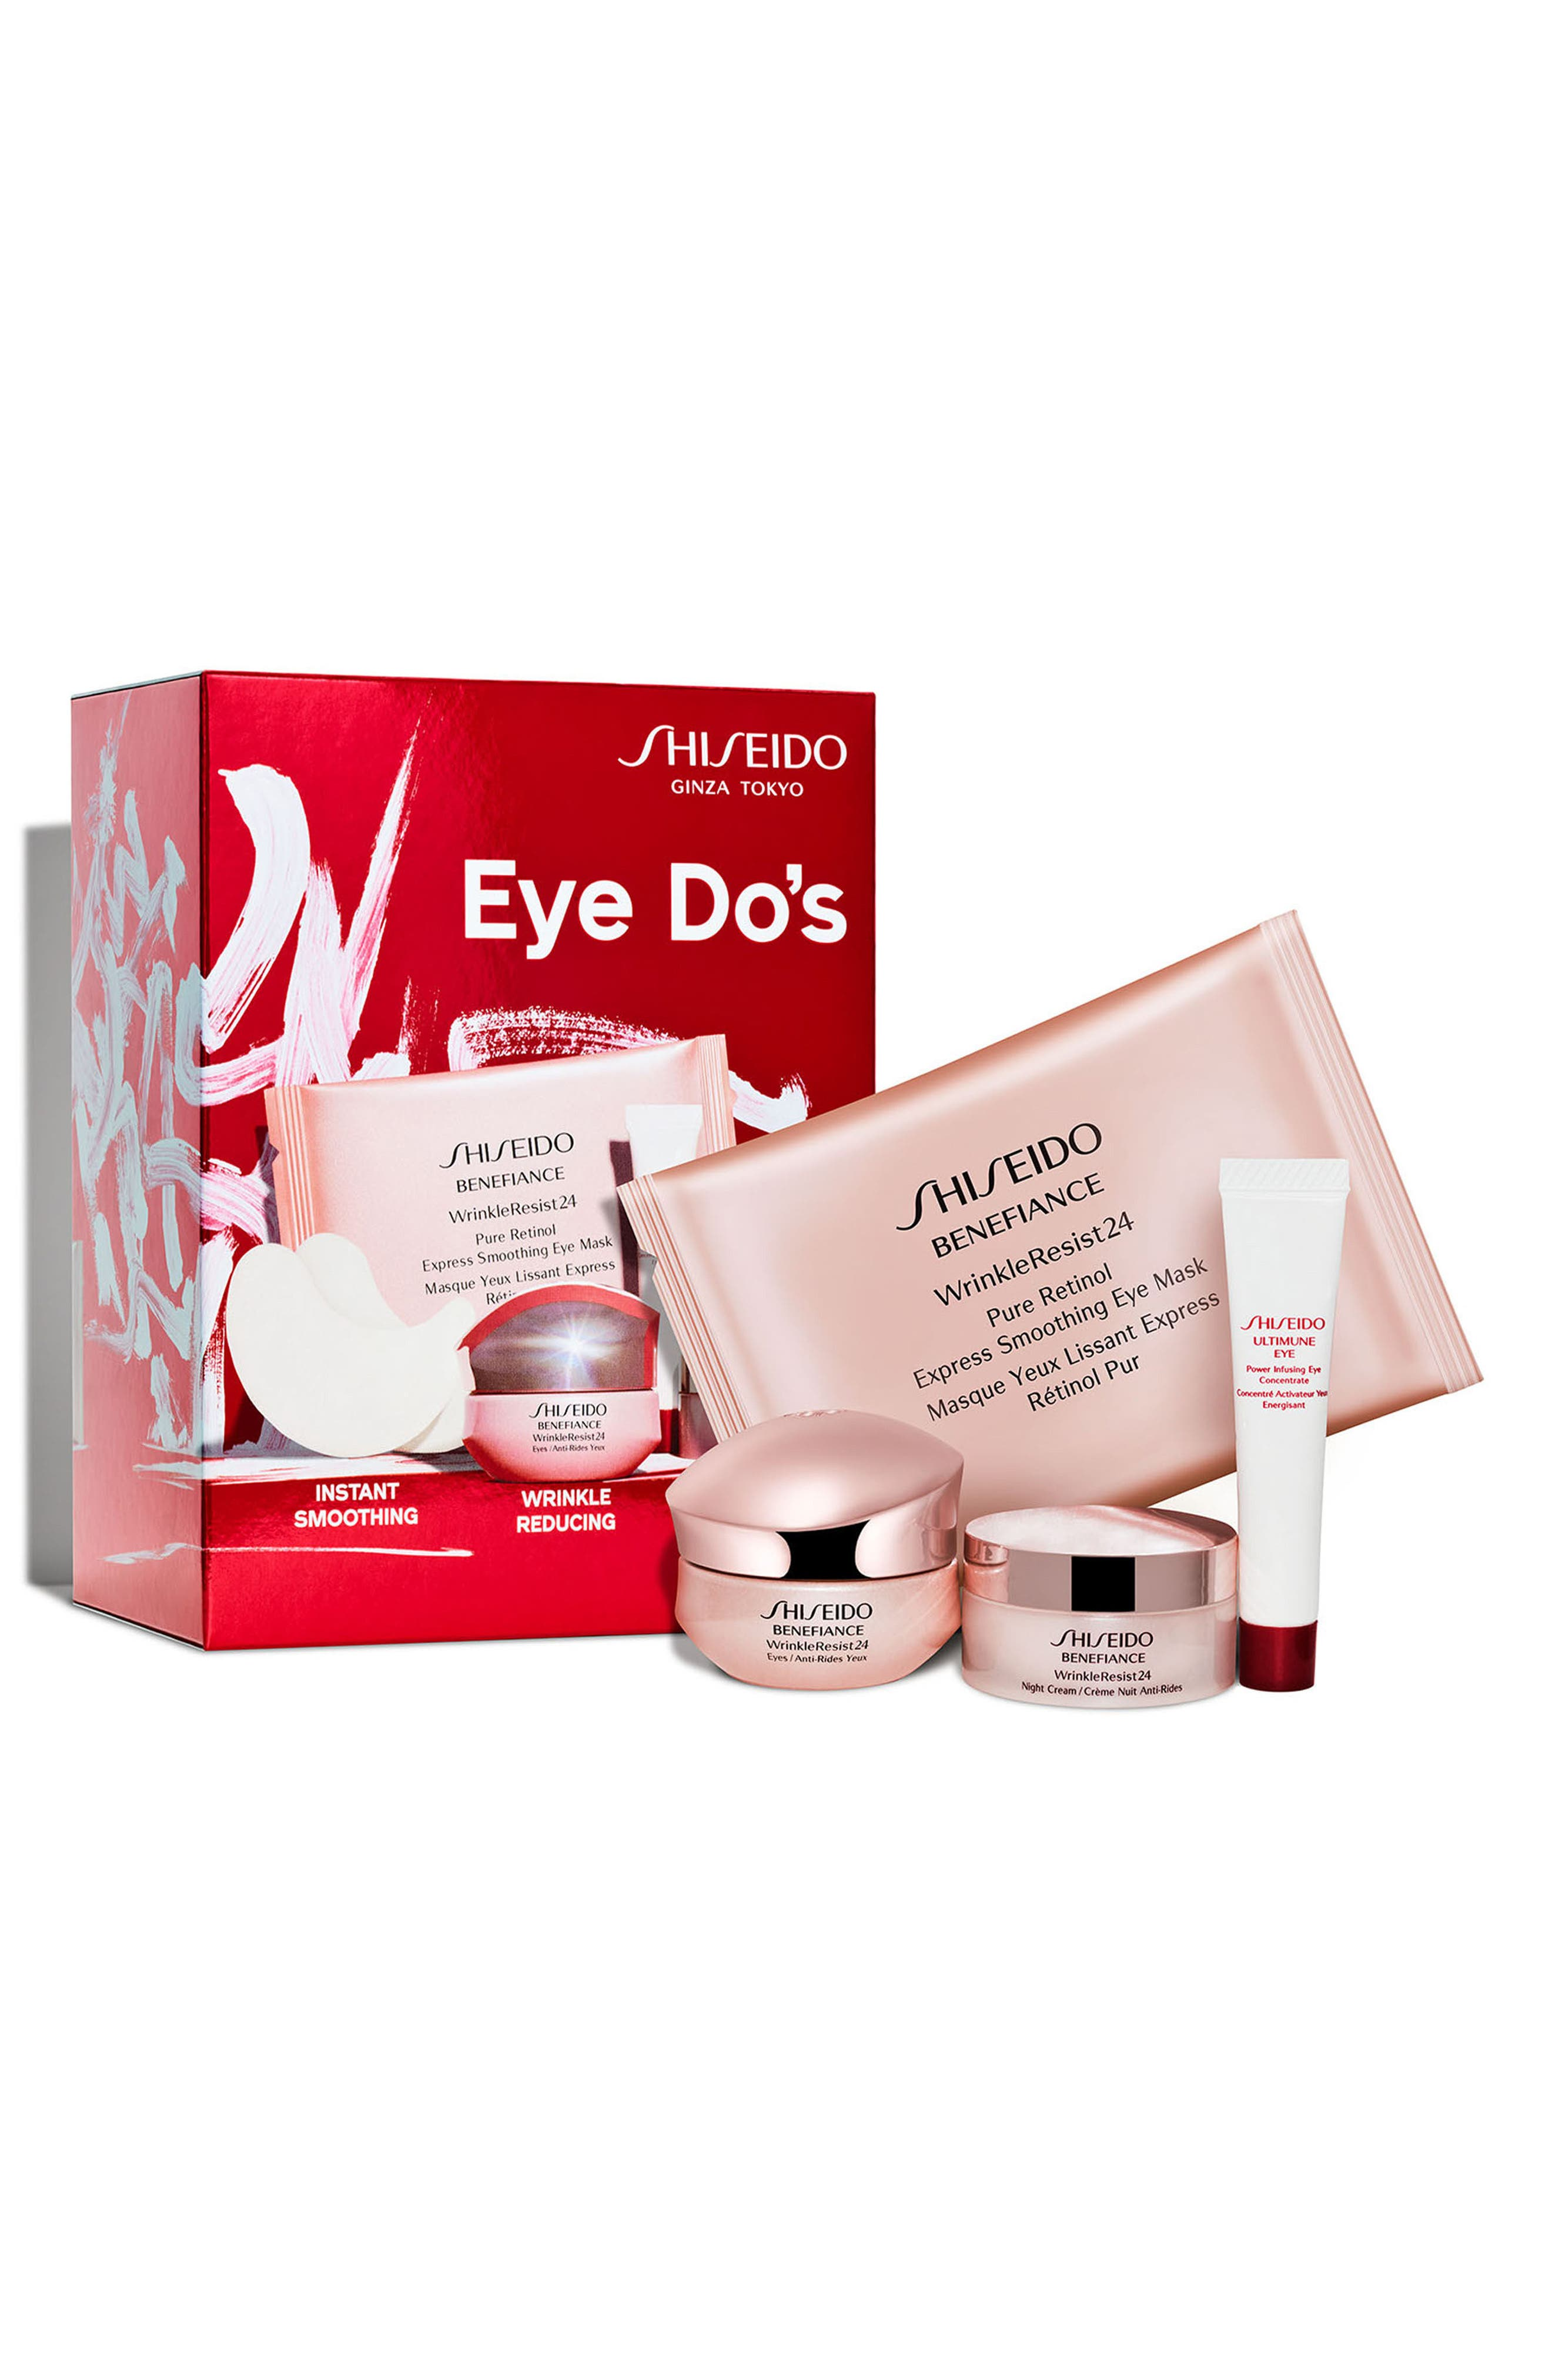 Shiseido Eye Do's Set ($106 Value)